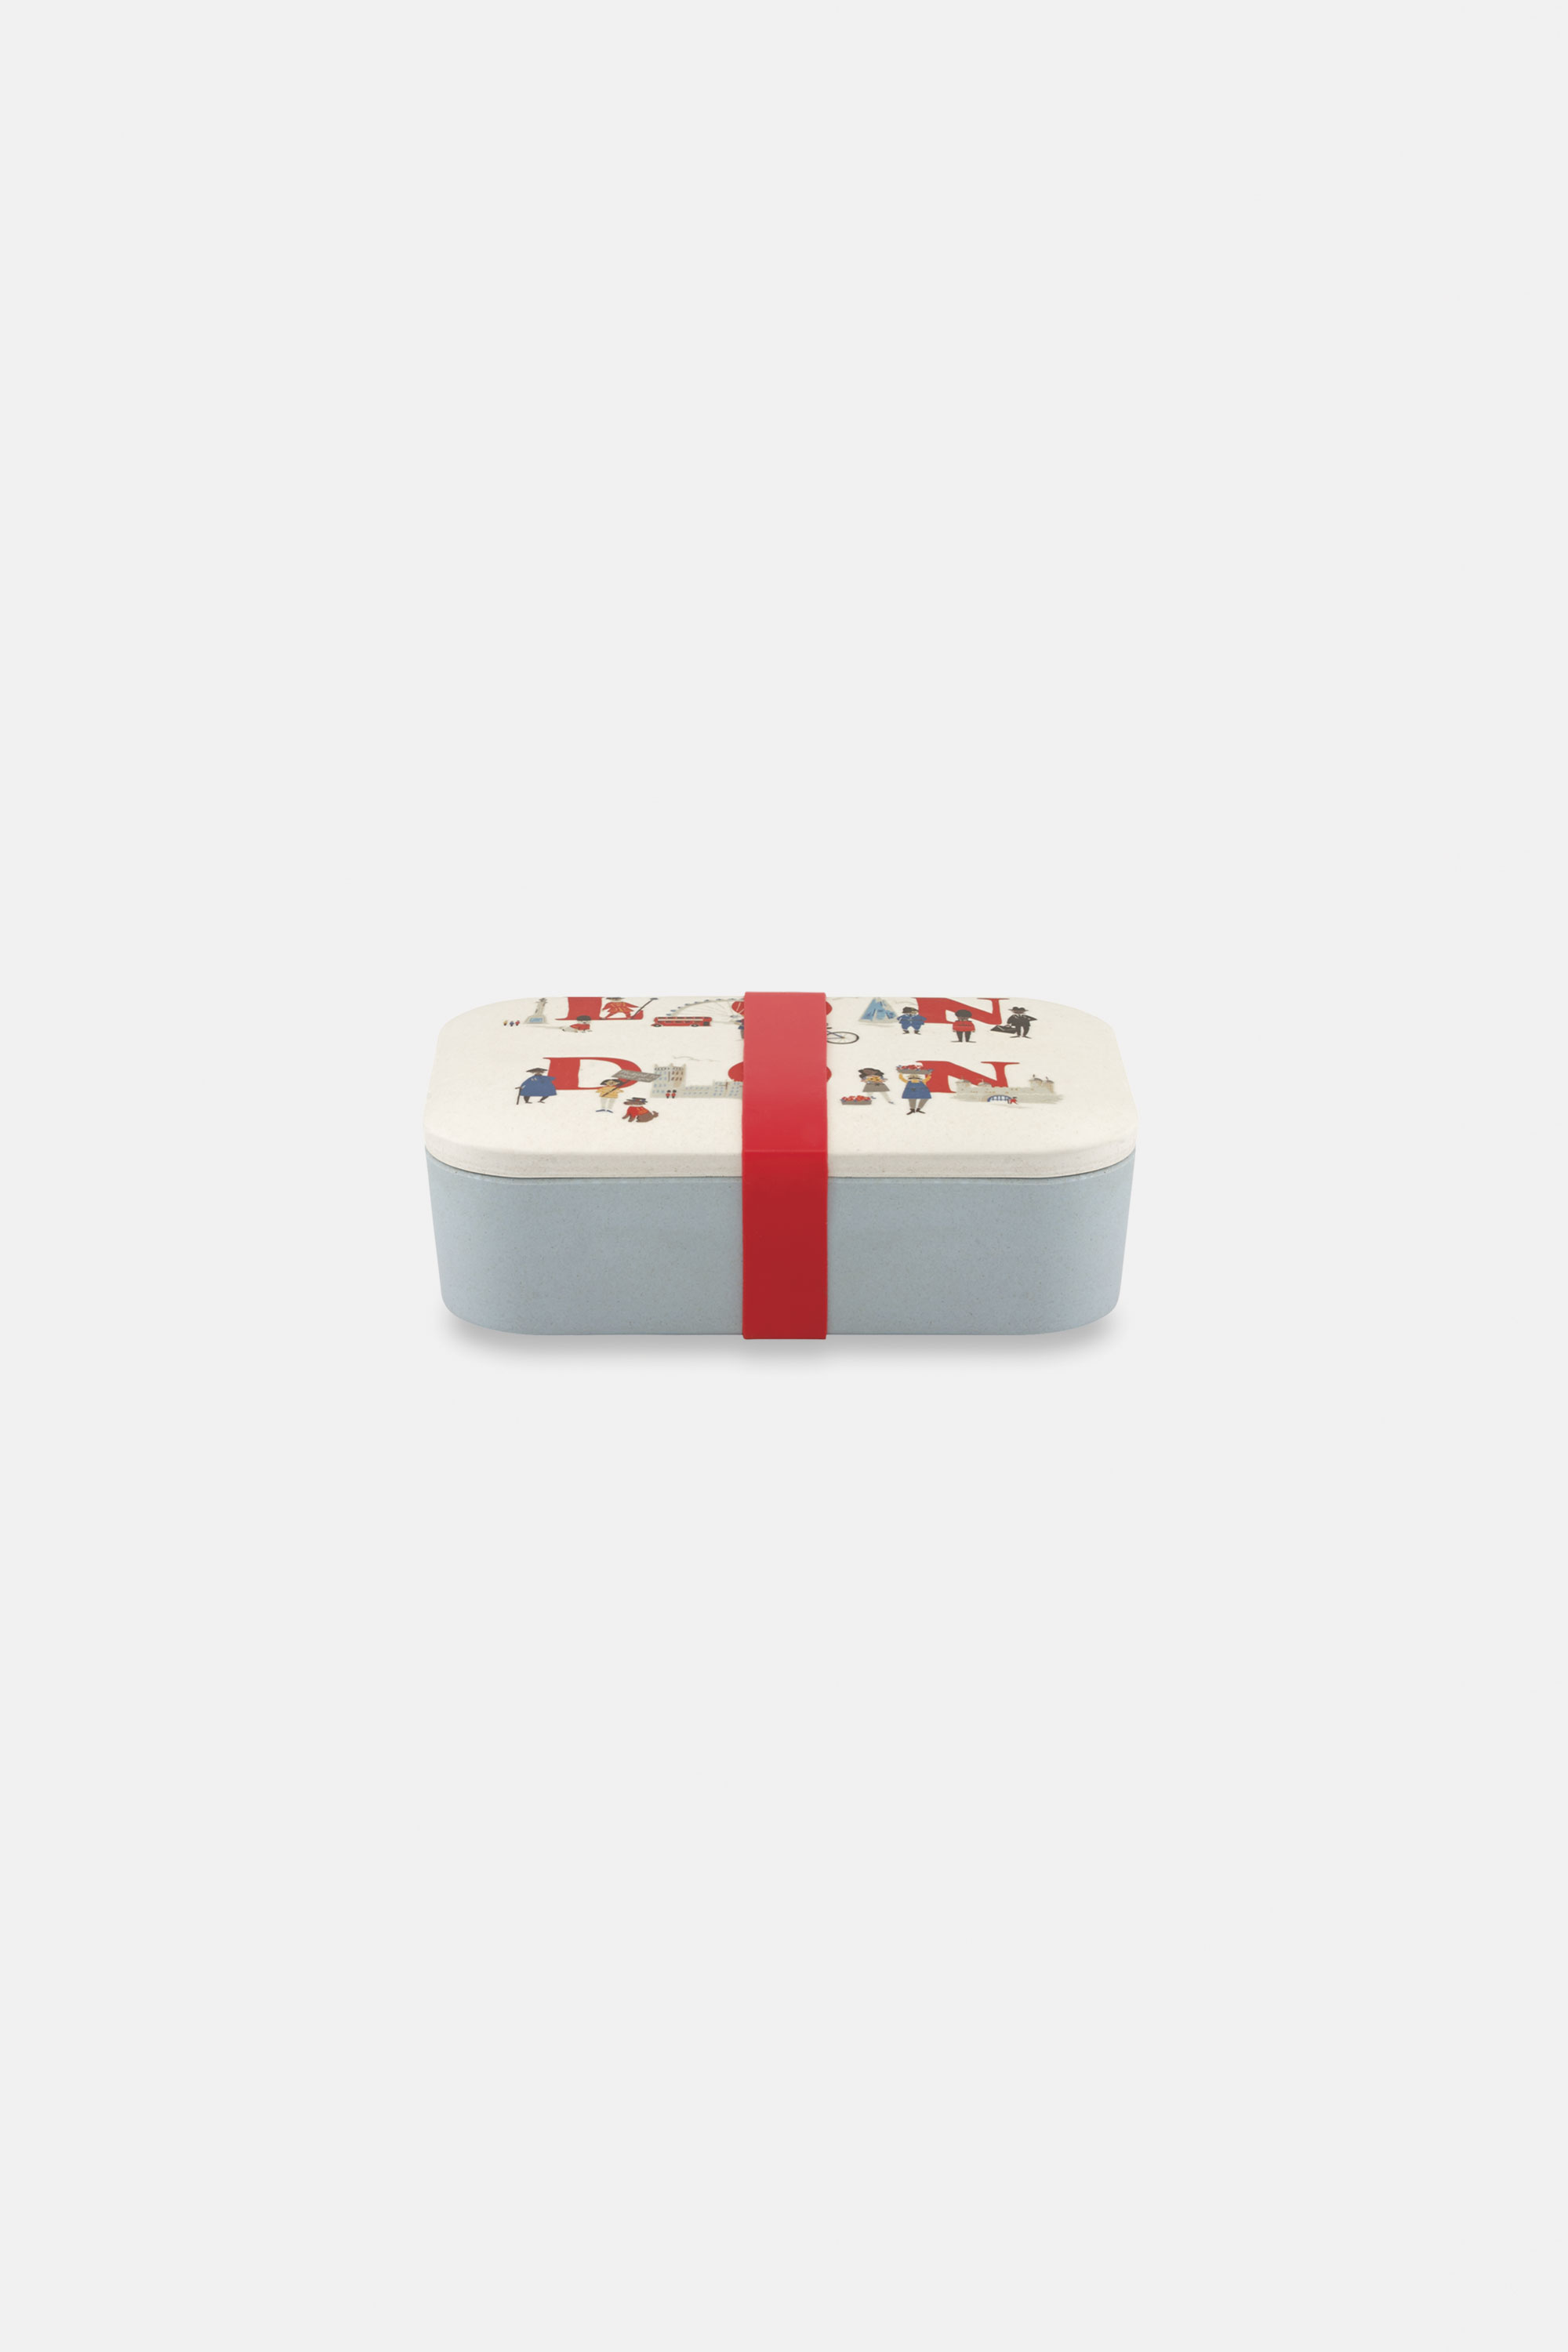 Cath Kidston London People Lunch Box in New Cream